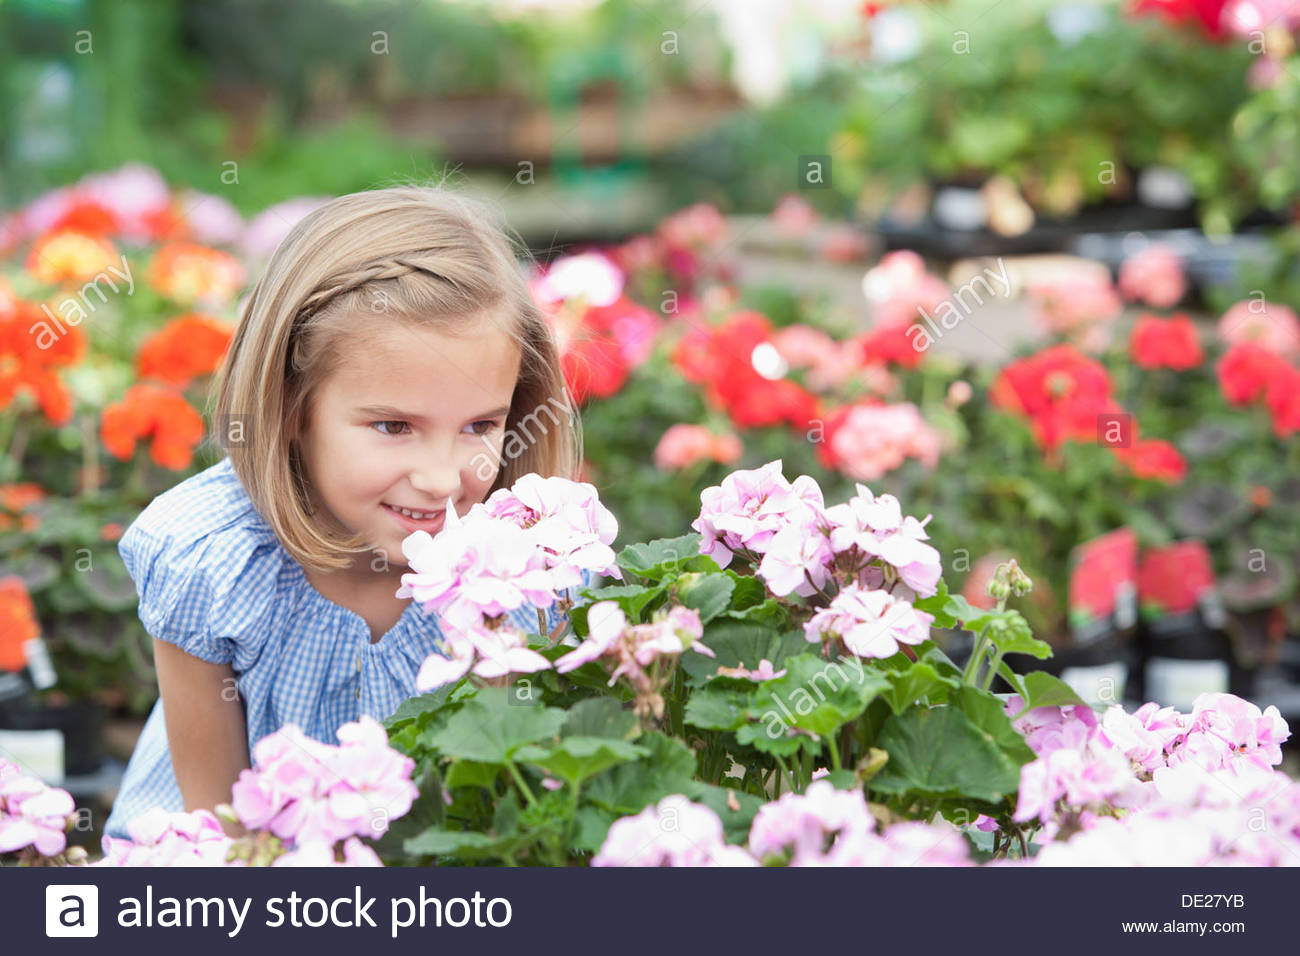 Girl smelling flowers at nursery Photo Stock